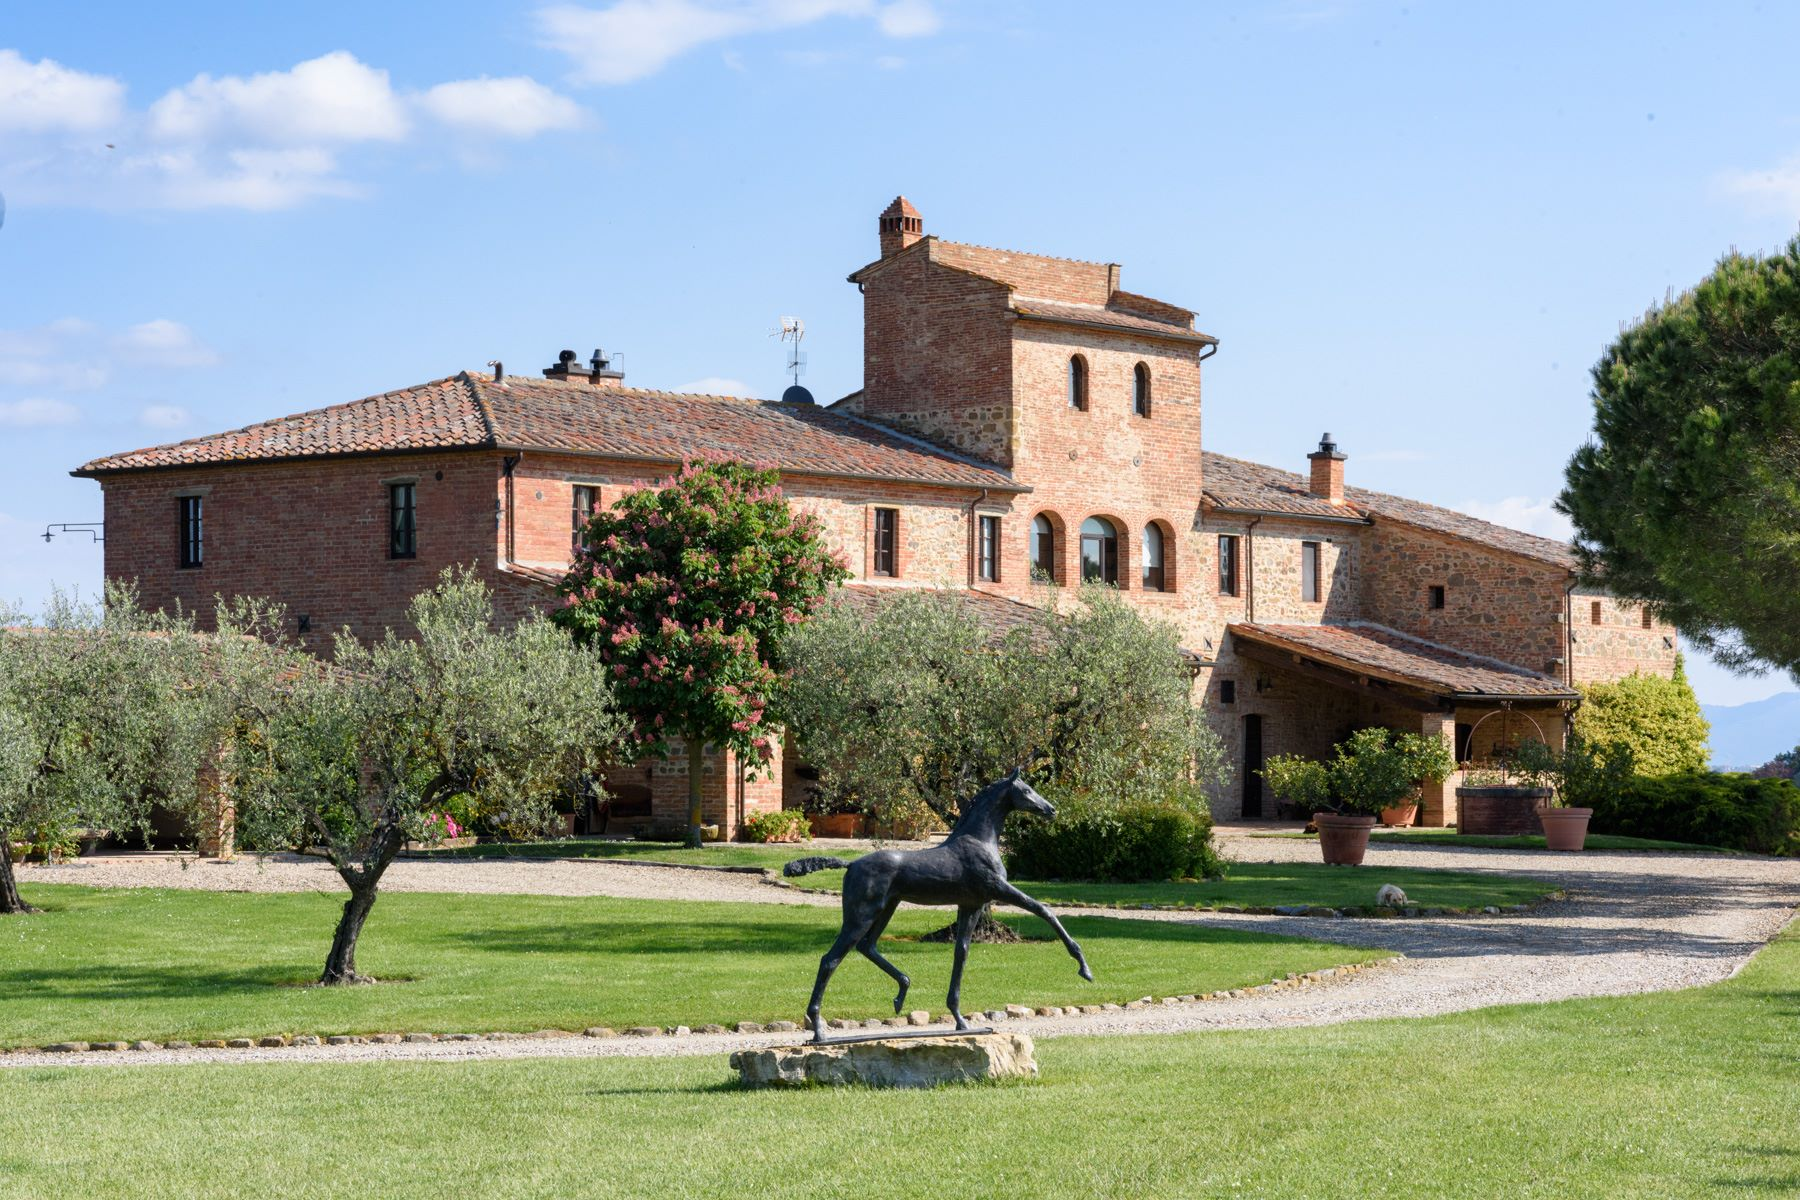 Tek Ailelik Ev için Satış at Tuscan countryhouse with 2,5 ha of vineyards Località Valcelle Torrita Di Siena, Siena, 53049 Italya